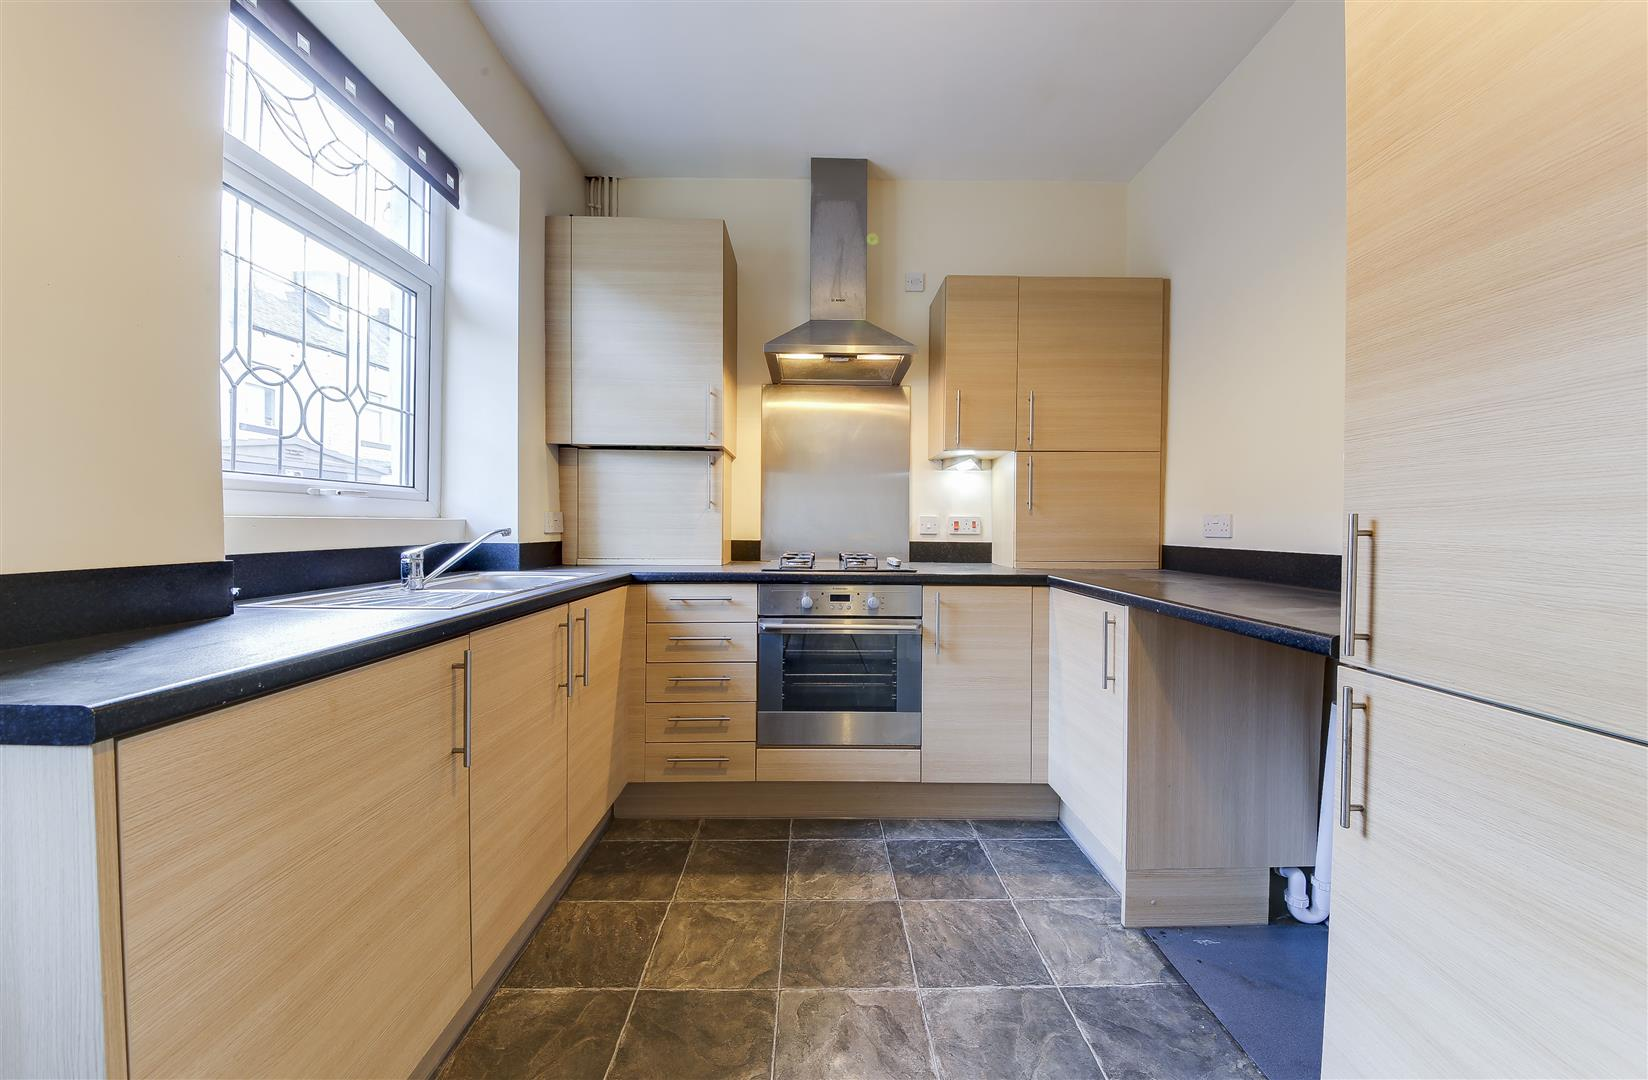 2 Bedrooms Terraced House for sale in Margaret Street, Rawtenstall, Rossendale